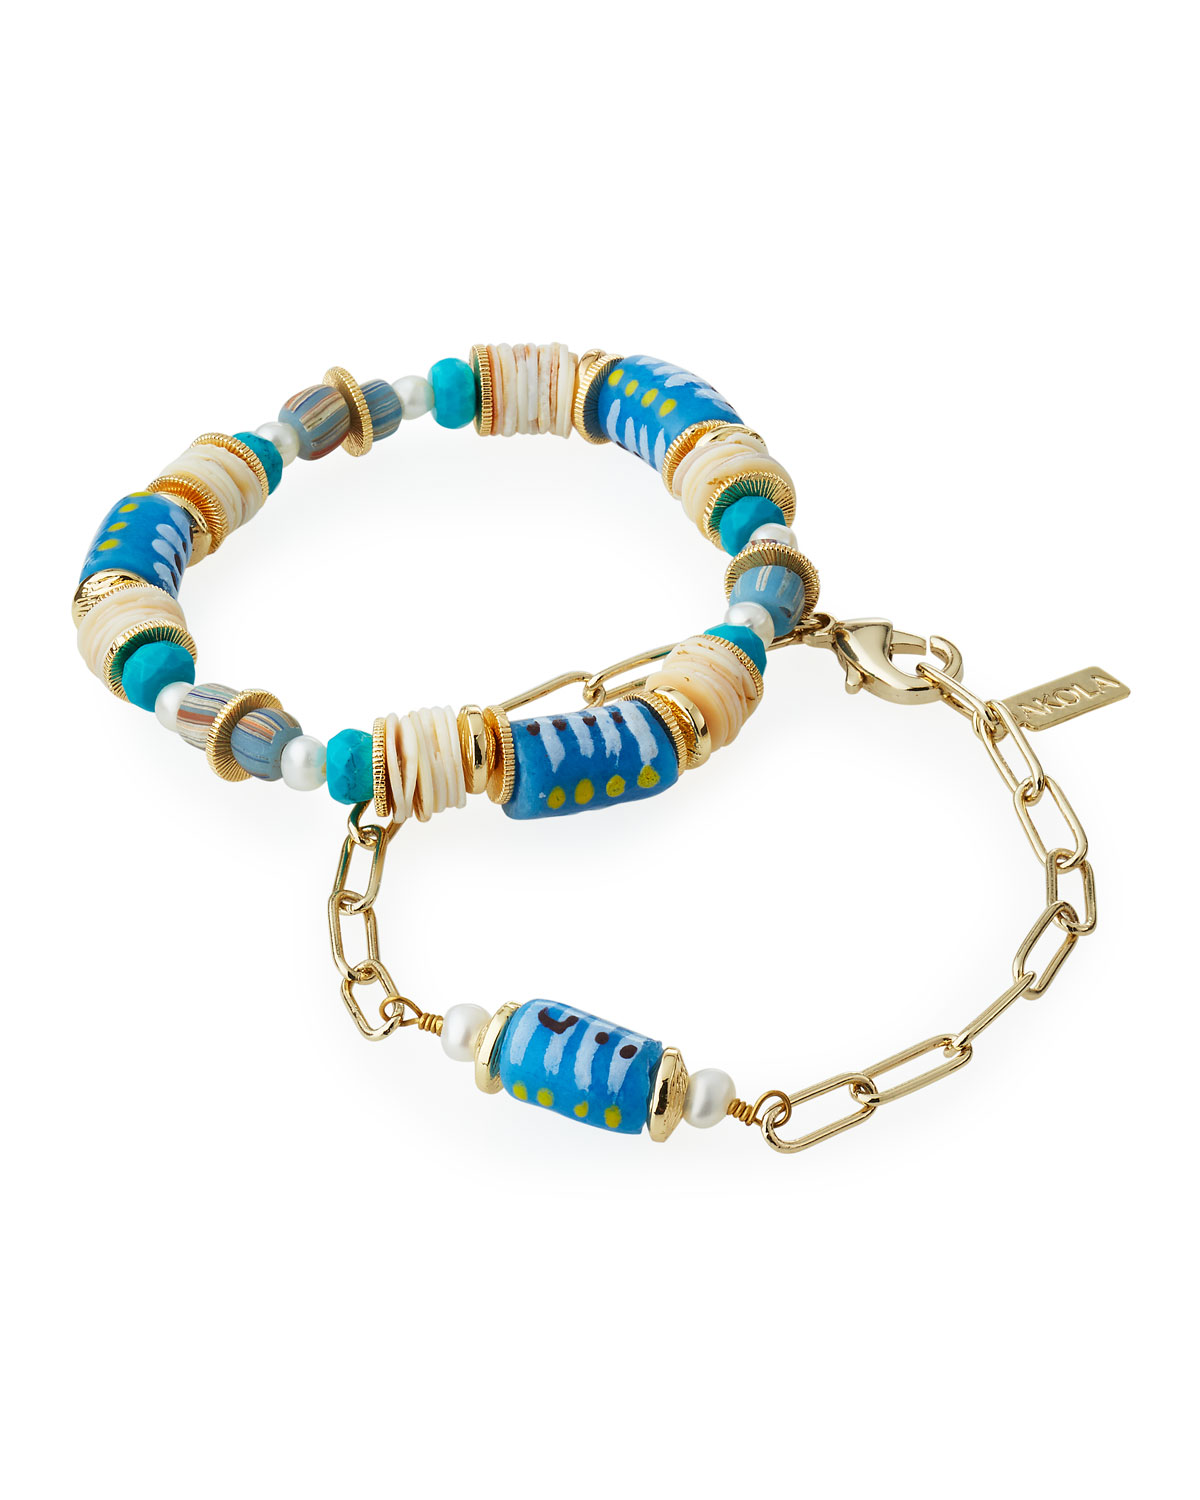 Lori Beaded Stretch Bracelets with White Pearl and Turquoise-Dyed Howlite